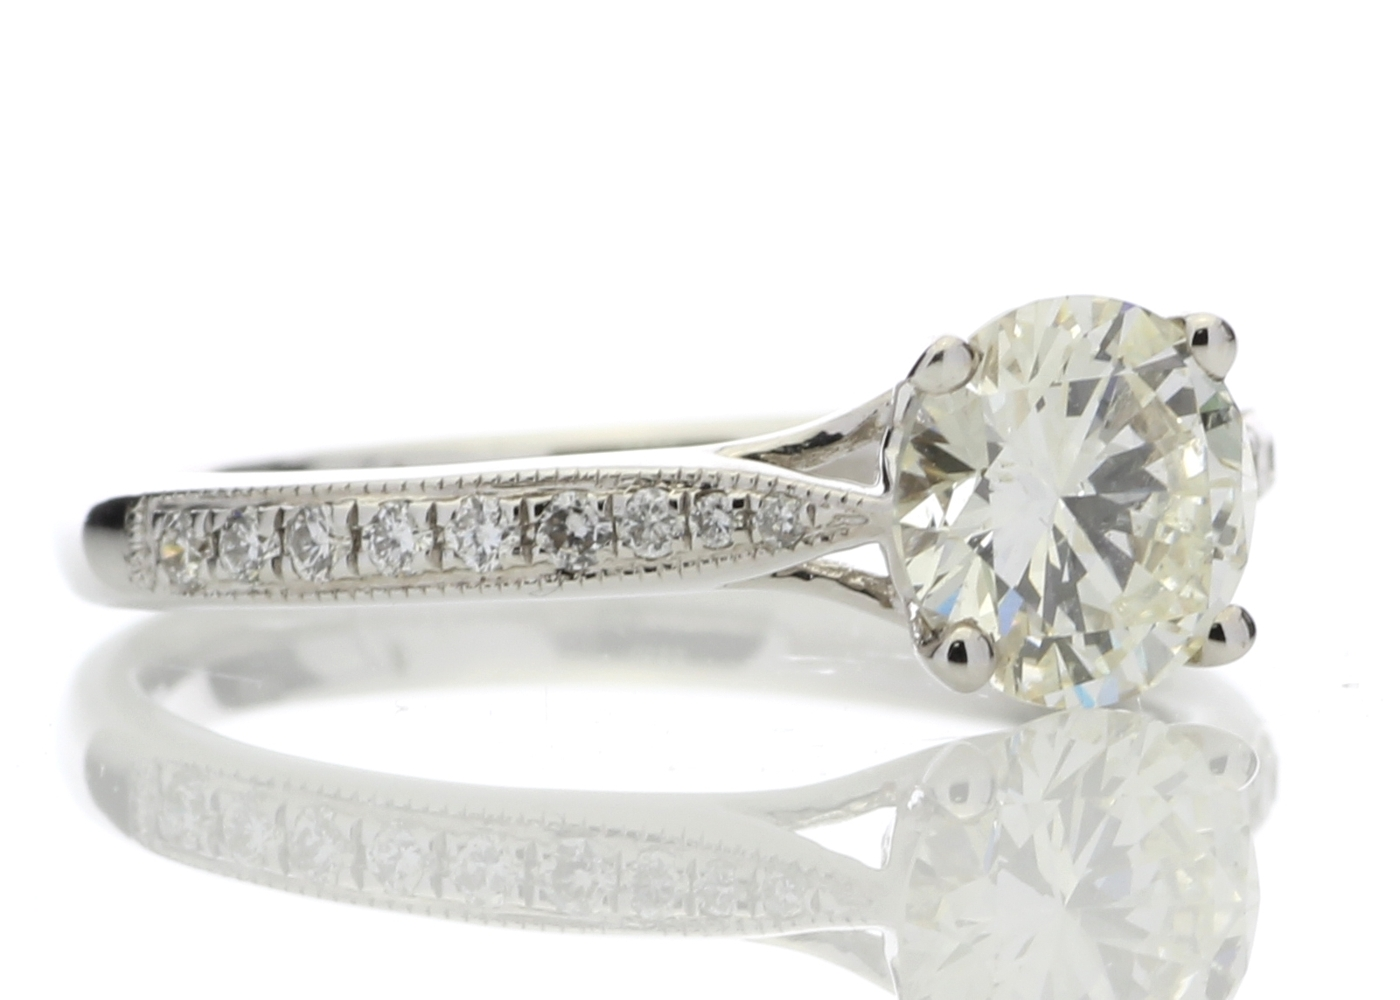 18ct White Gold Diamond Ring With Stone Set Shoulders 1.15 Carats - Image 4 of 5